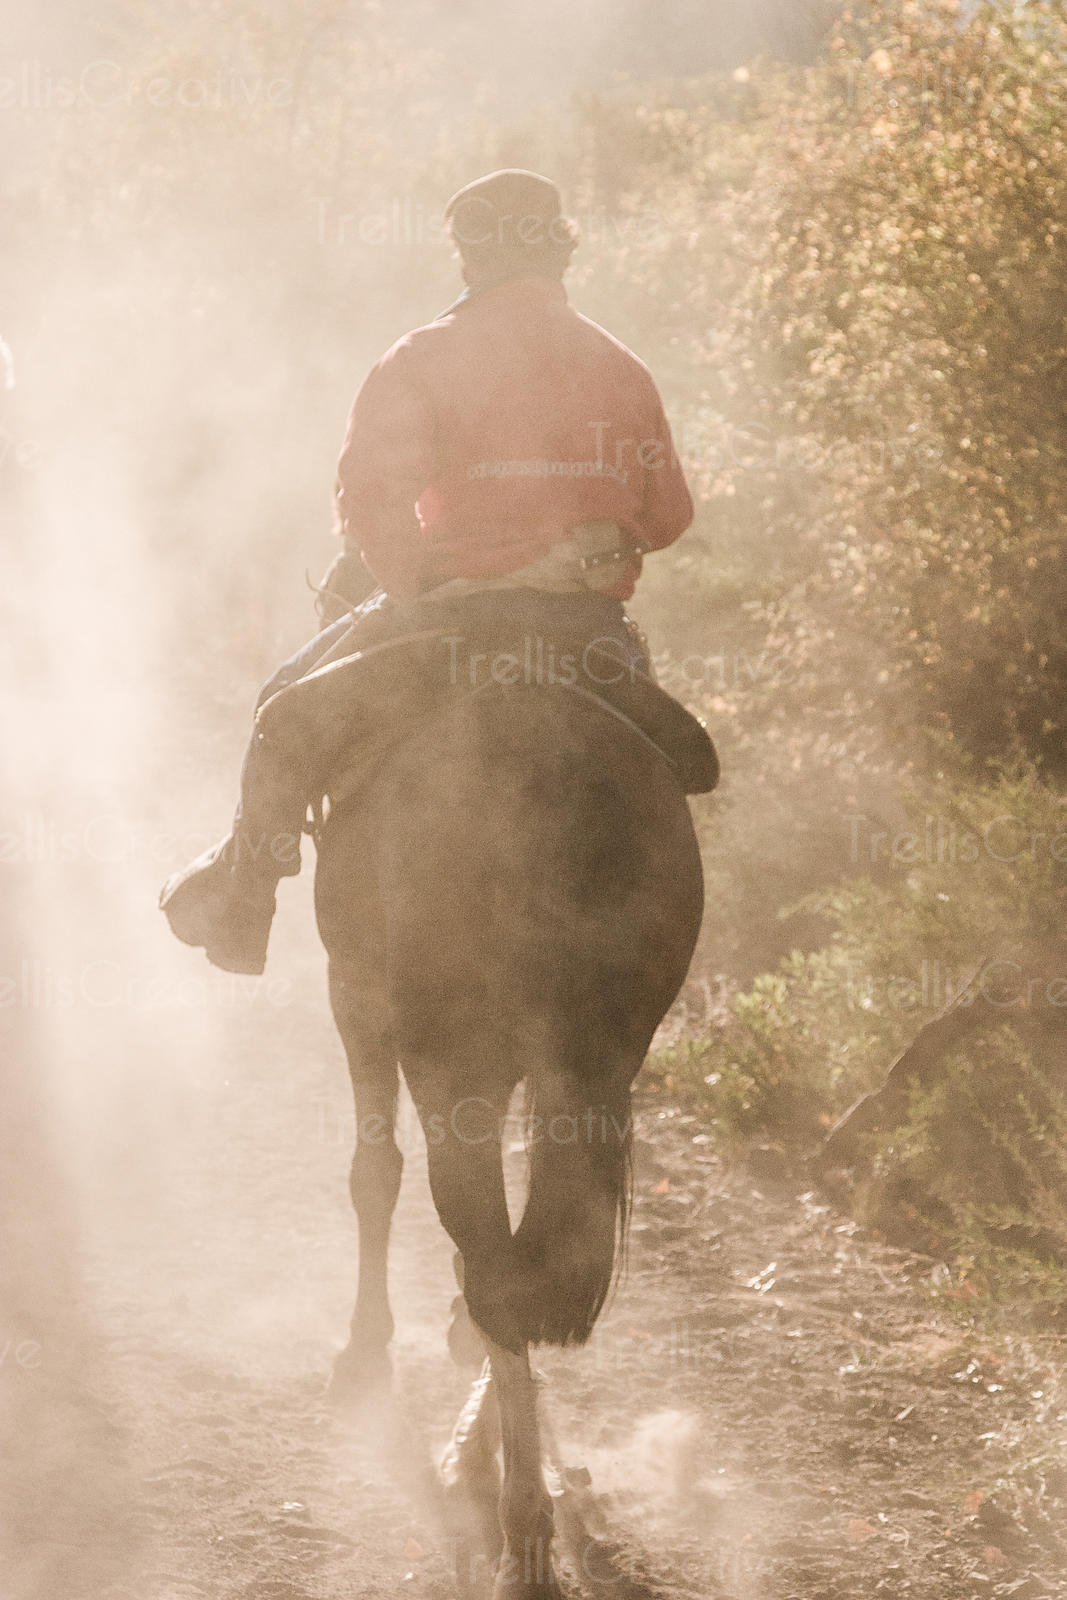 Working man rides his horse to work on a dusty trail.  Sunlight filters through the dust, bushes to his right.